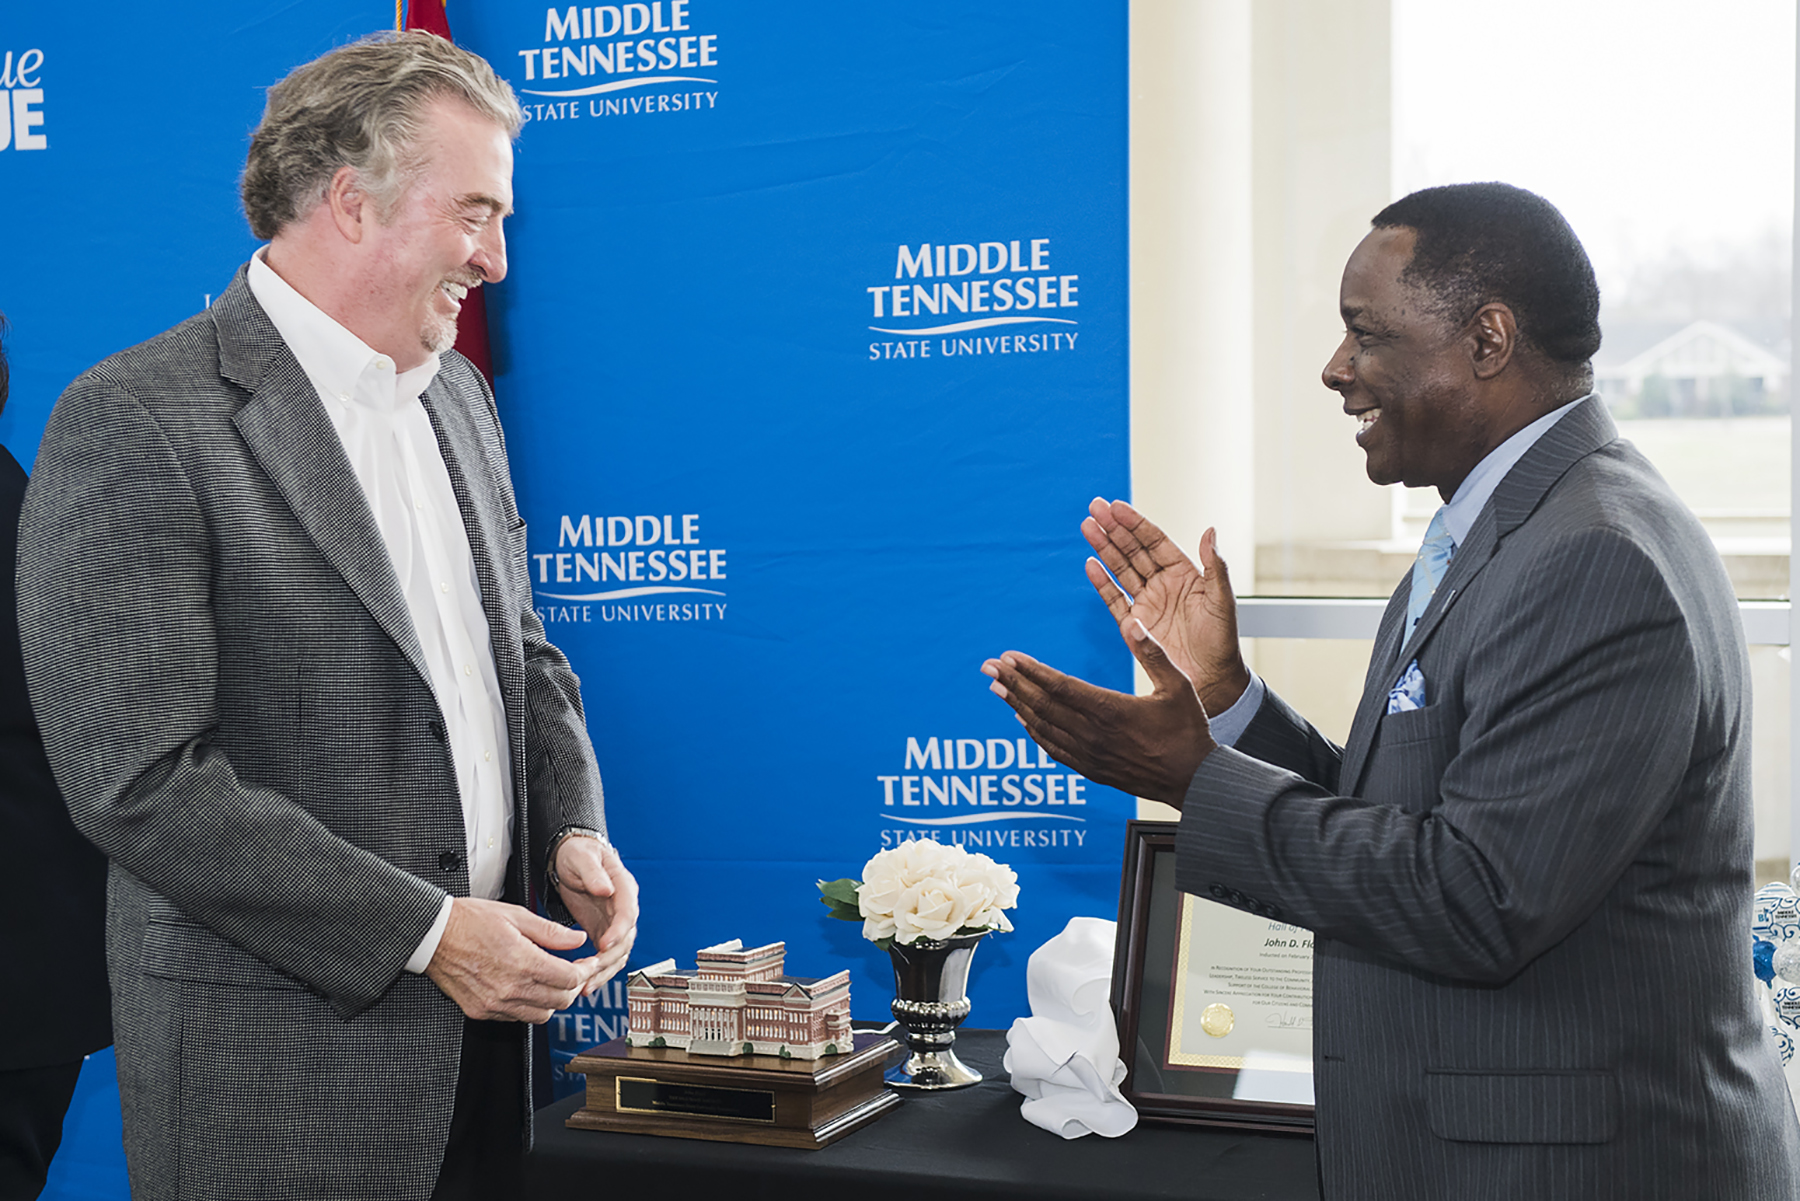 Homebuilder Floyd pledges $1M to help launch MTSU Center for Student Coaching and Success